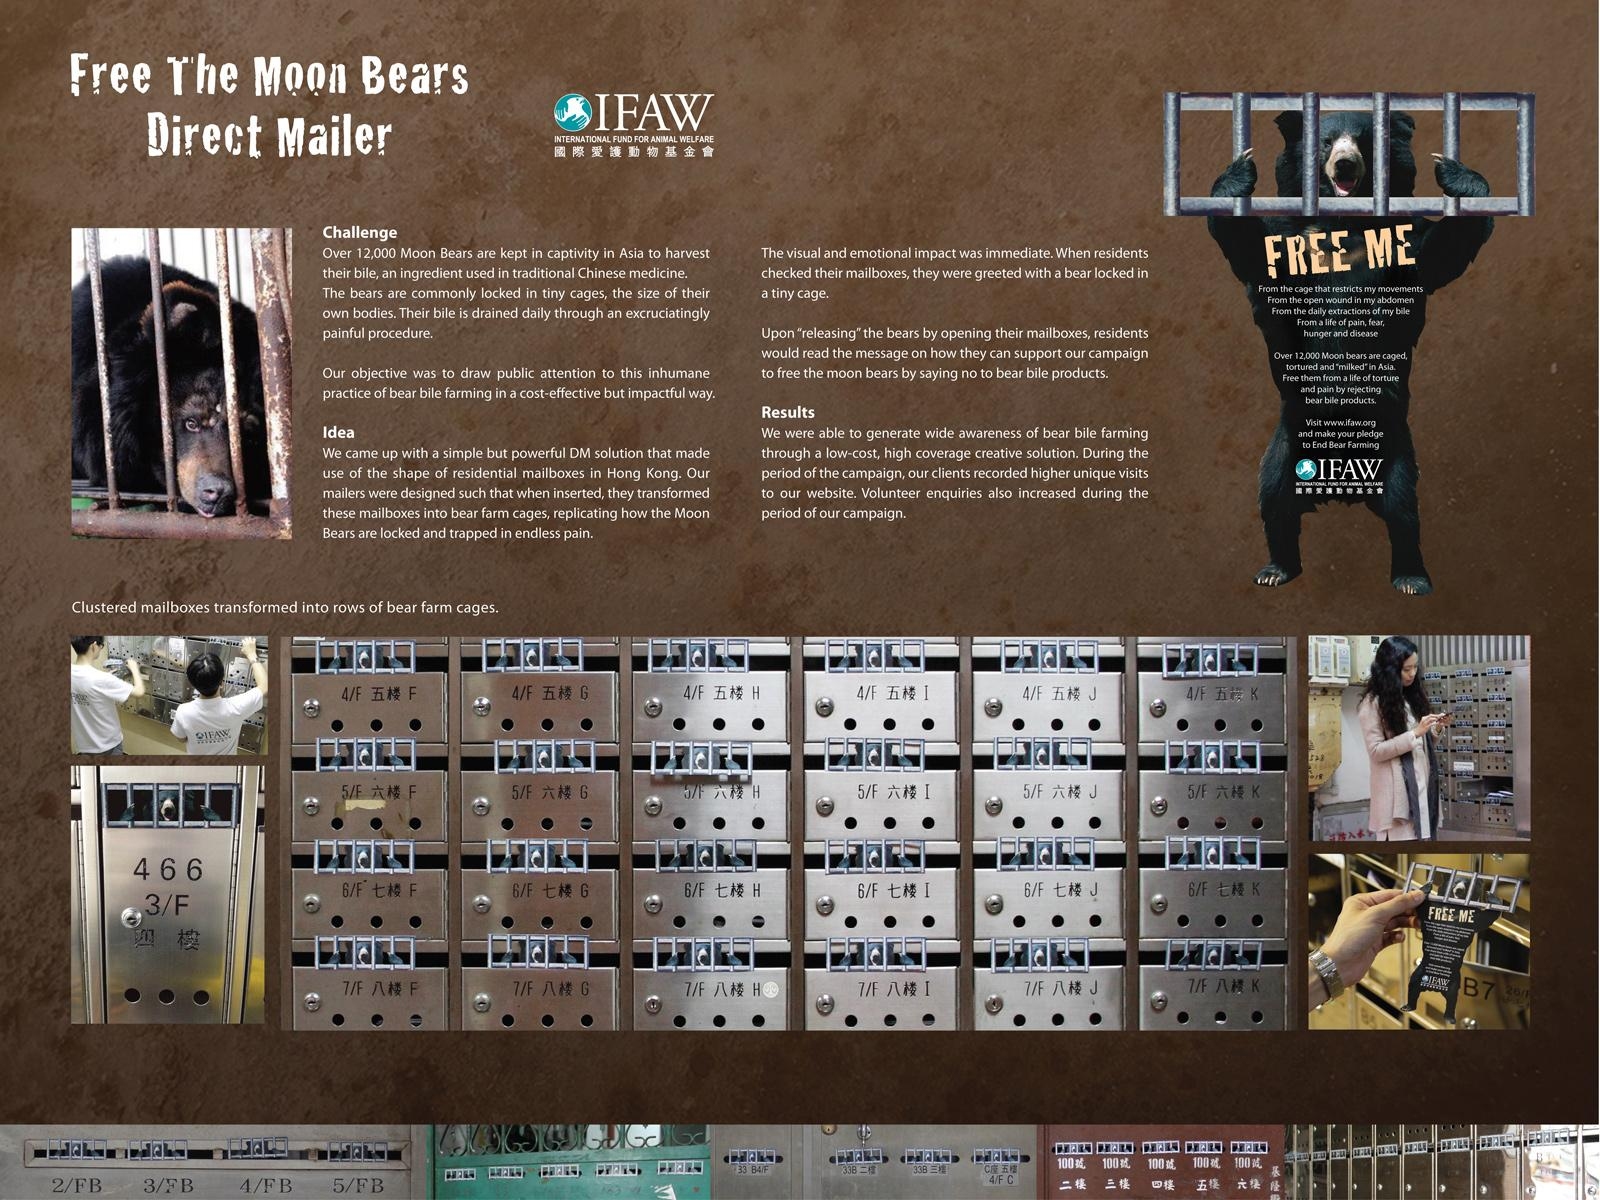 International Fund For Animal Welfare Ambient Ad -  Free the moon bear